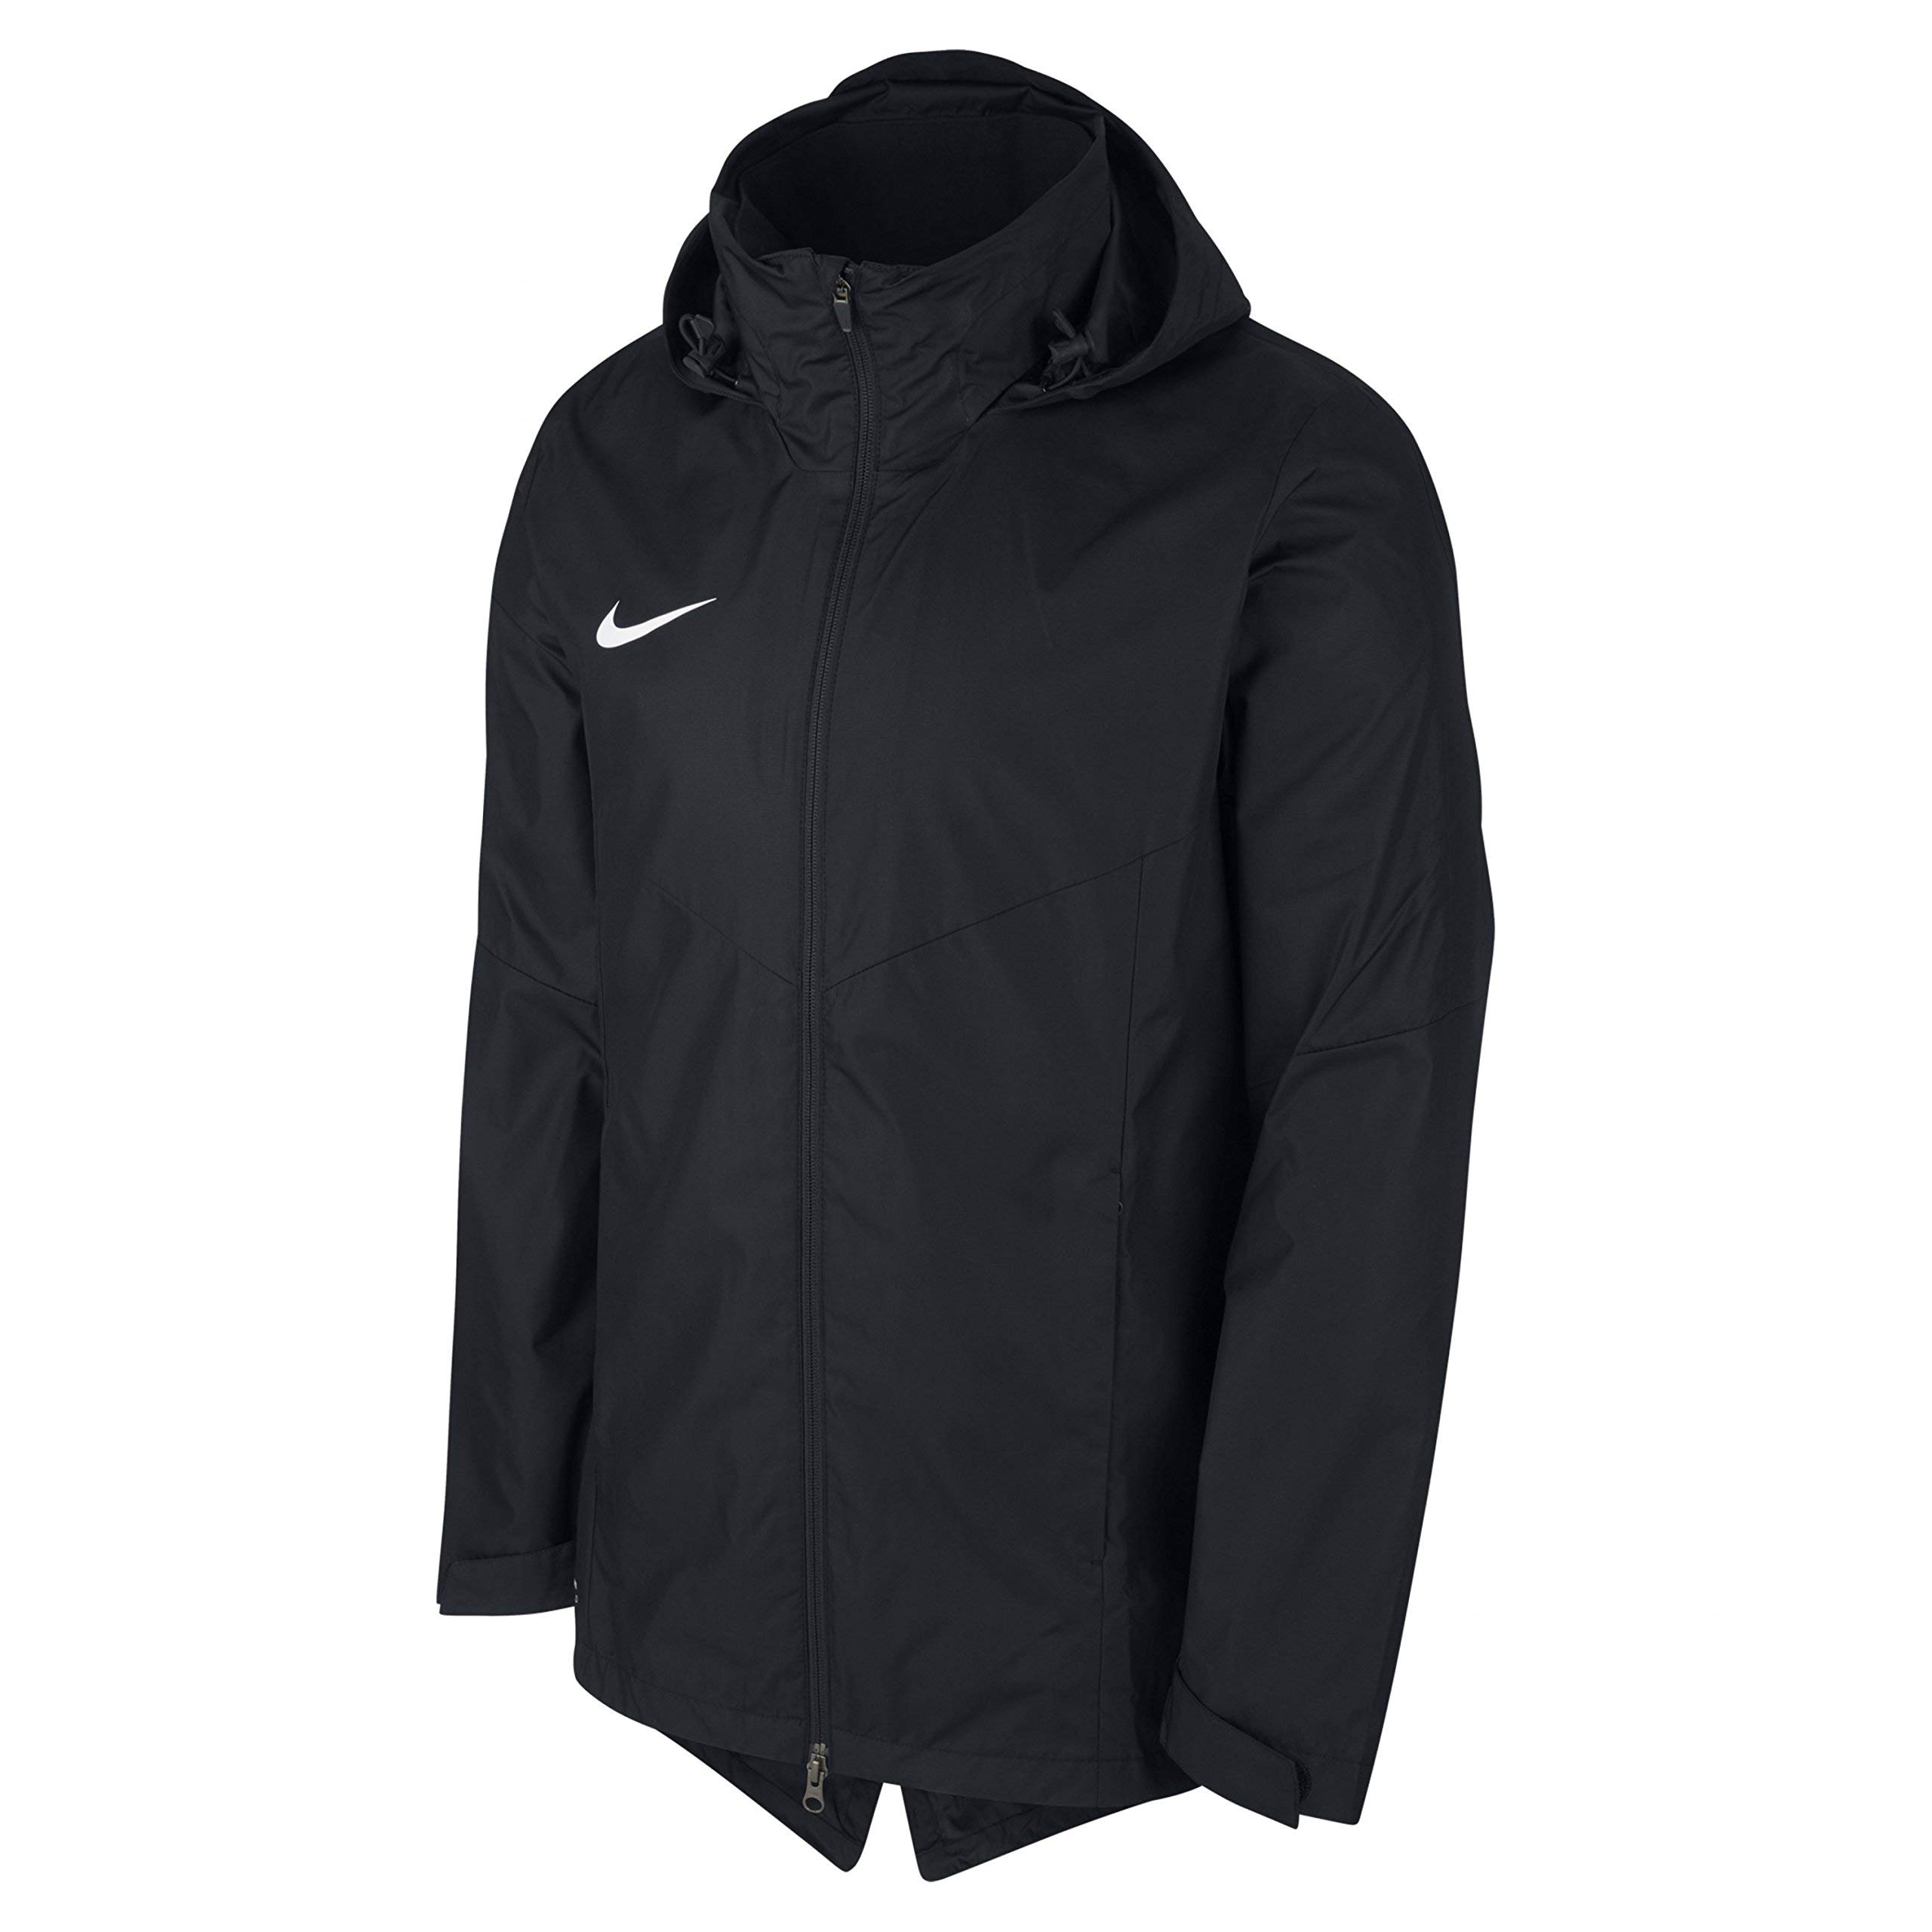 NIKE Boys Academy 18 Rain Jacket (Black, M)